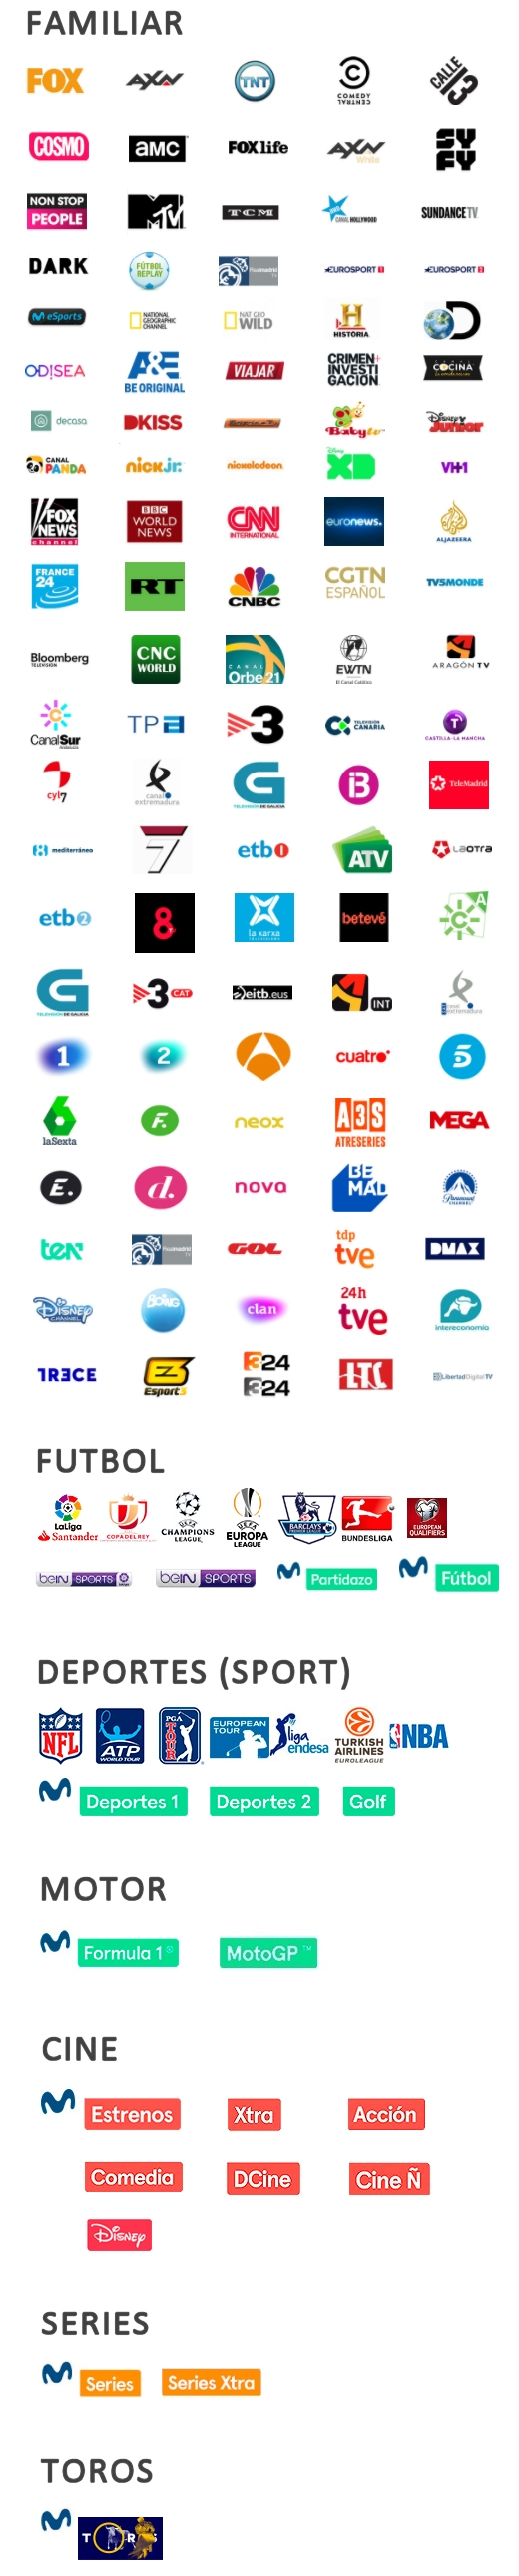 MOVISTAR CHANNELS